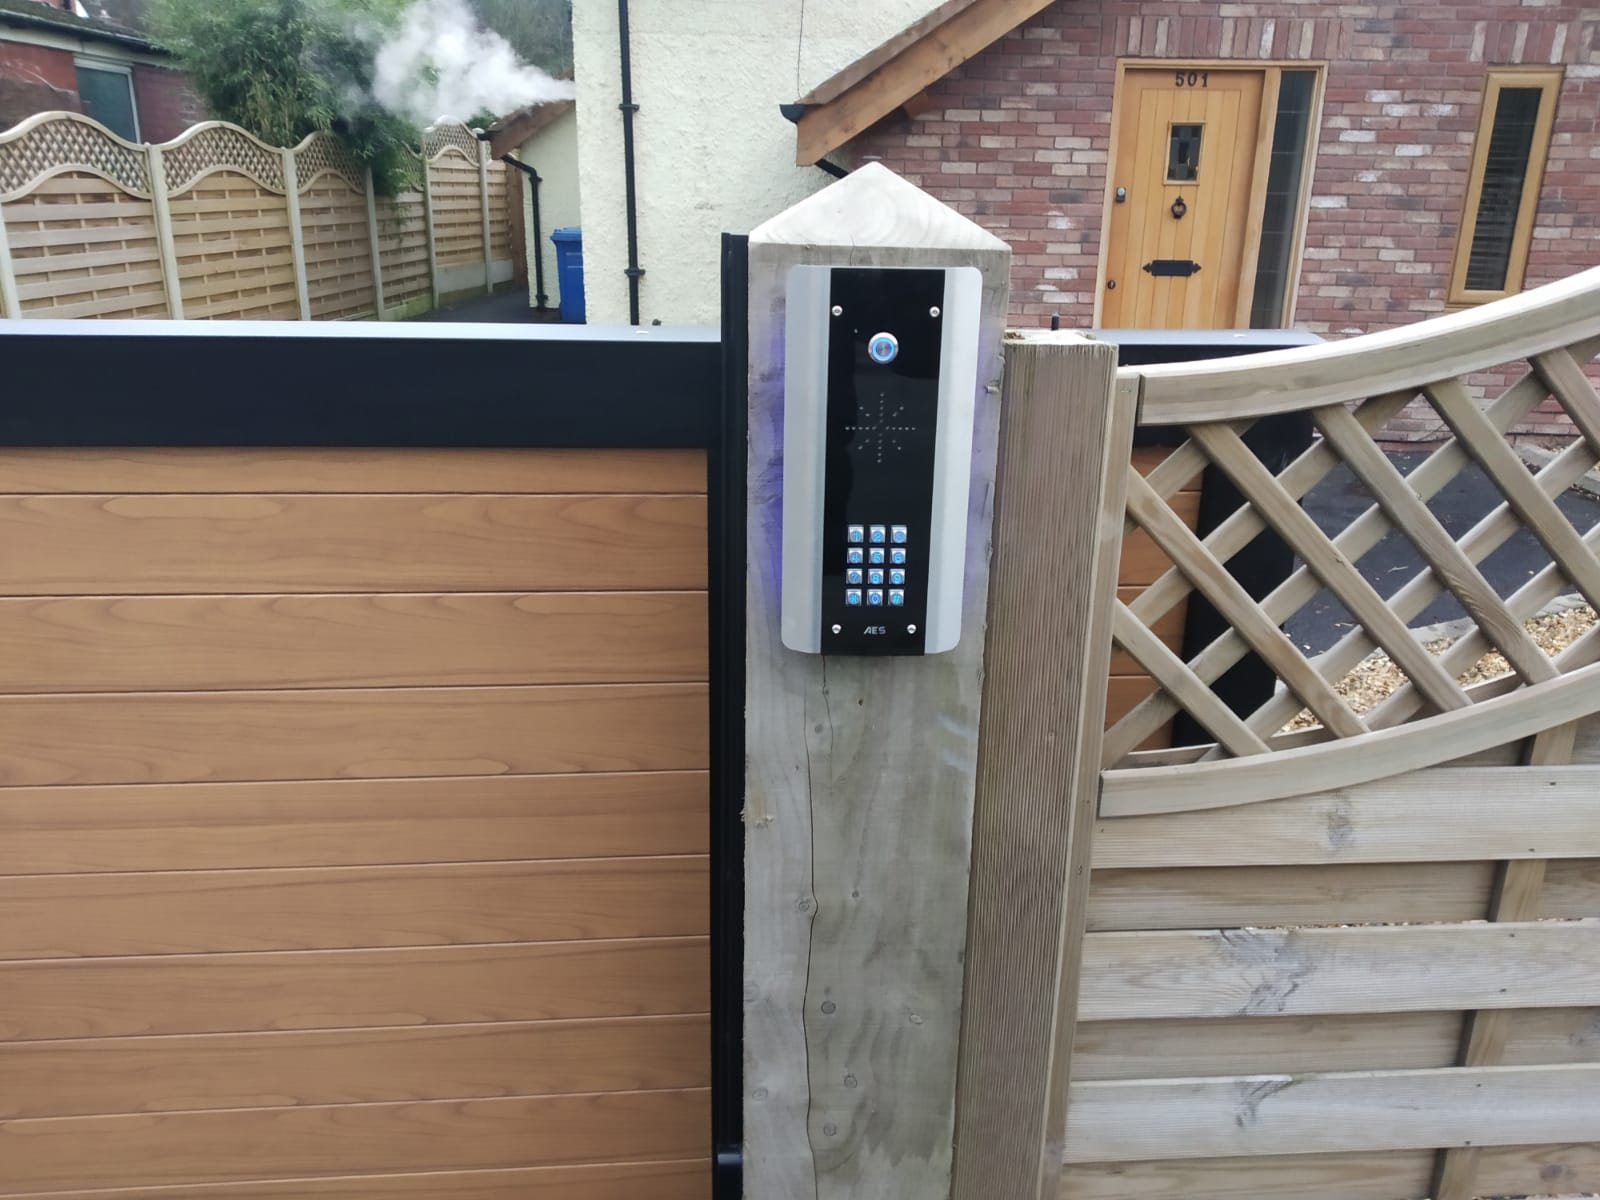 Intercom for aluminium sliding gate